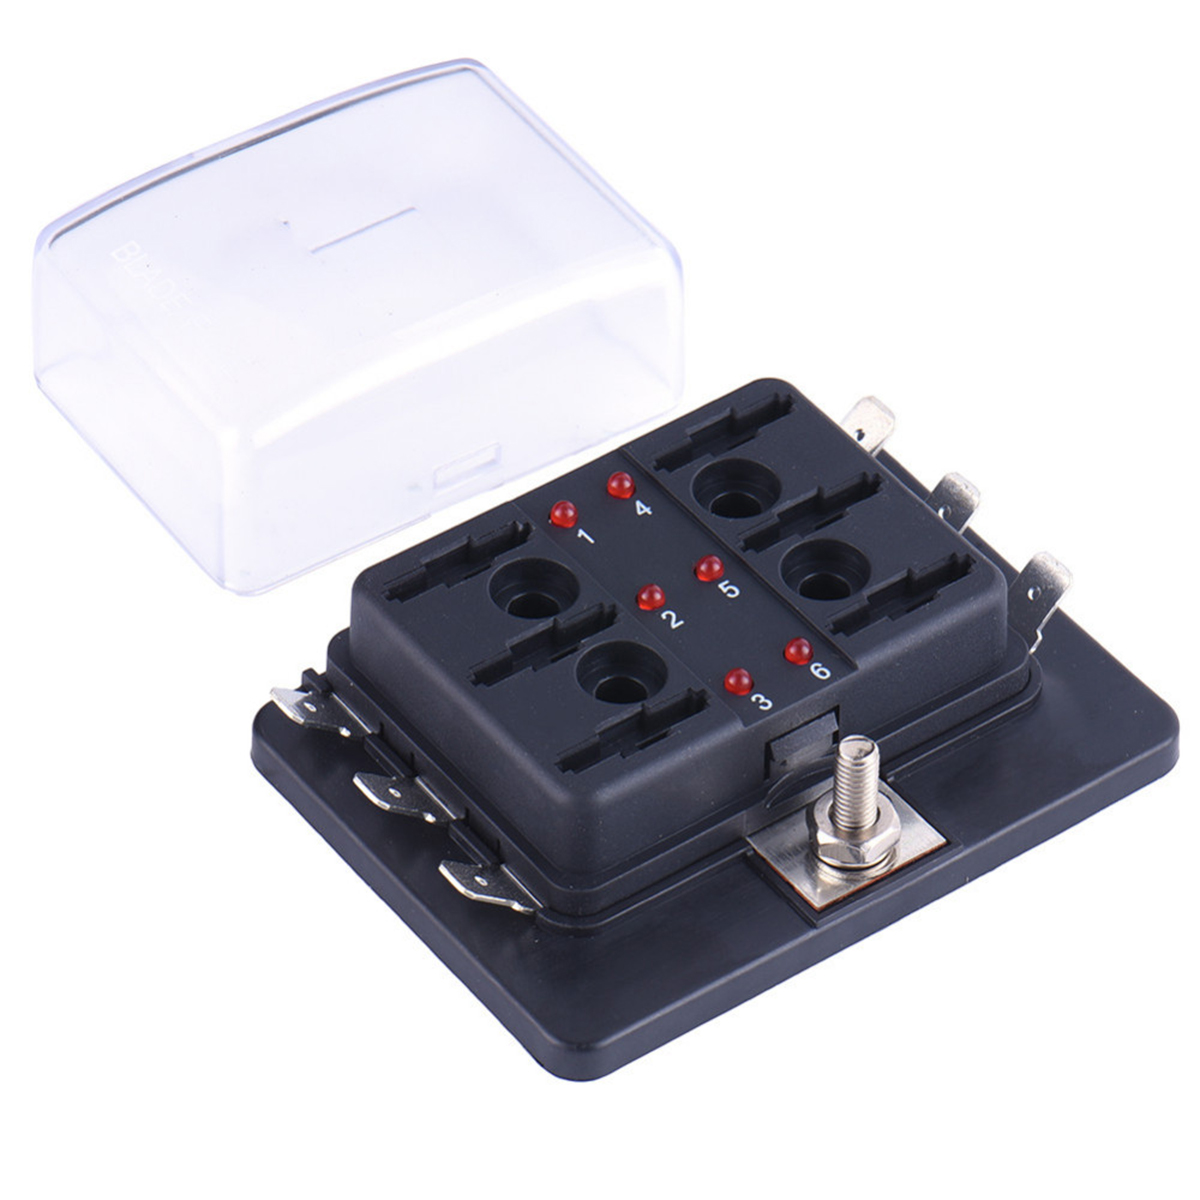 DC12V/24V/32V 6Way Car Boat Automotive Blade Fuse Box Block Holder LED Warning